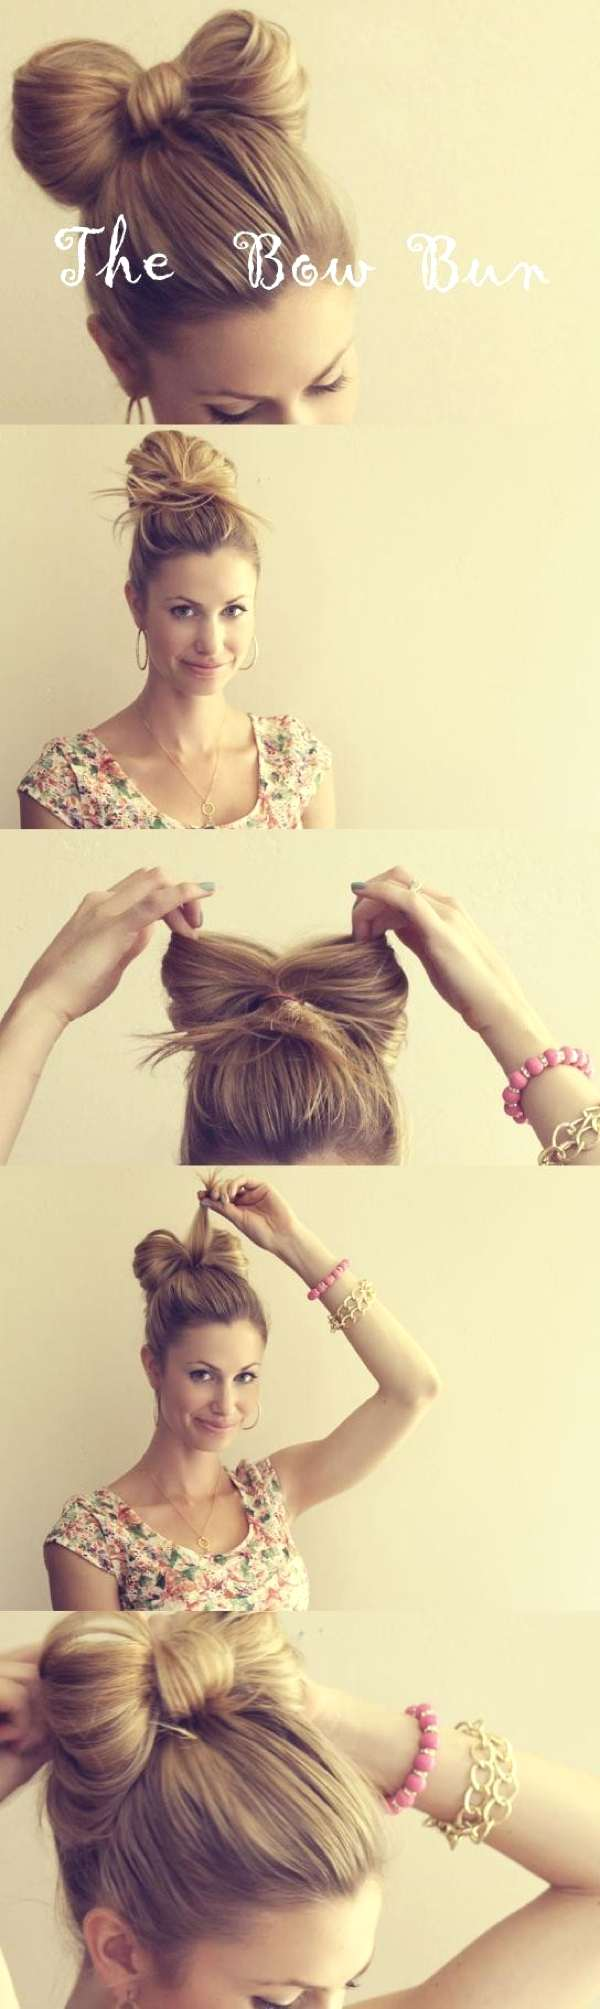 bow top bun